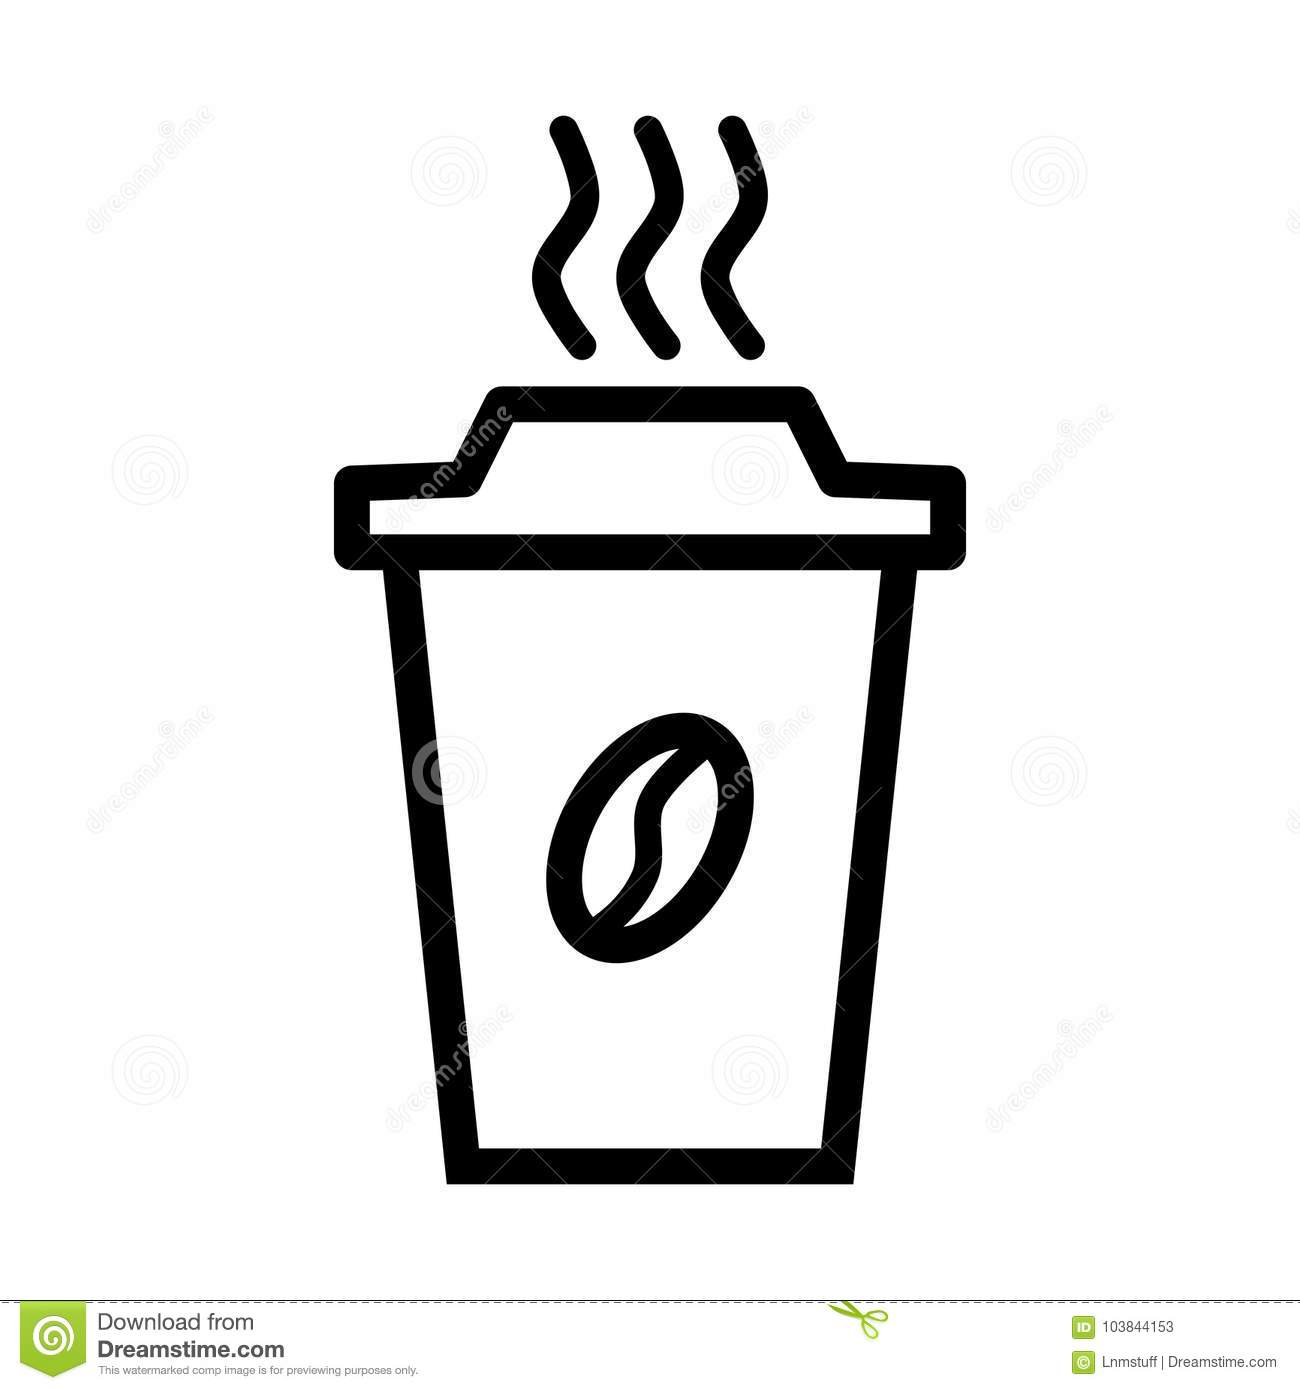 Vector Simple Flat Style Illustration Of A Coffee Cup Starbucks Icon Isolated On White Background High Quality Editable And Scalable Eps File